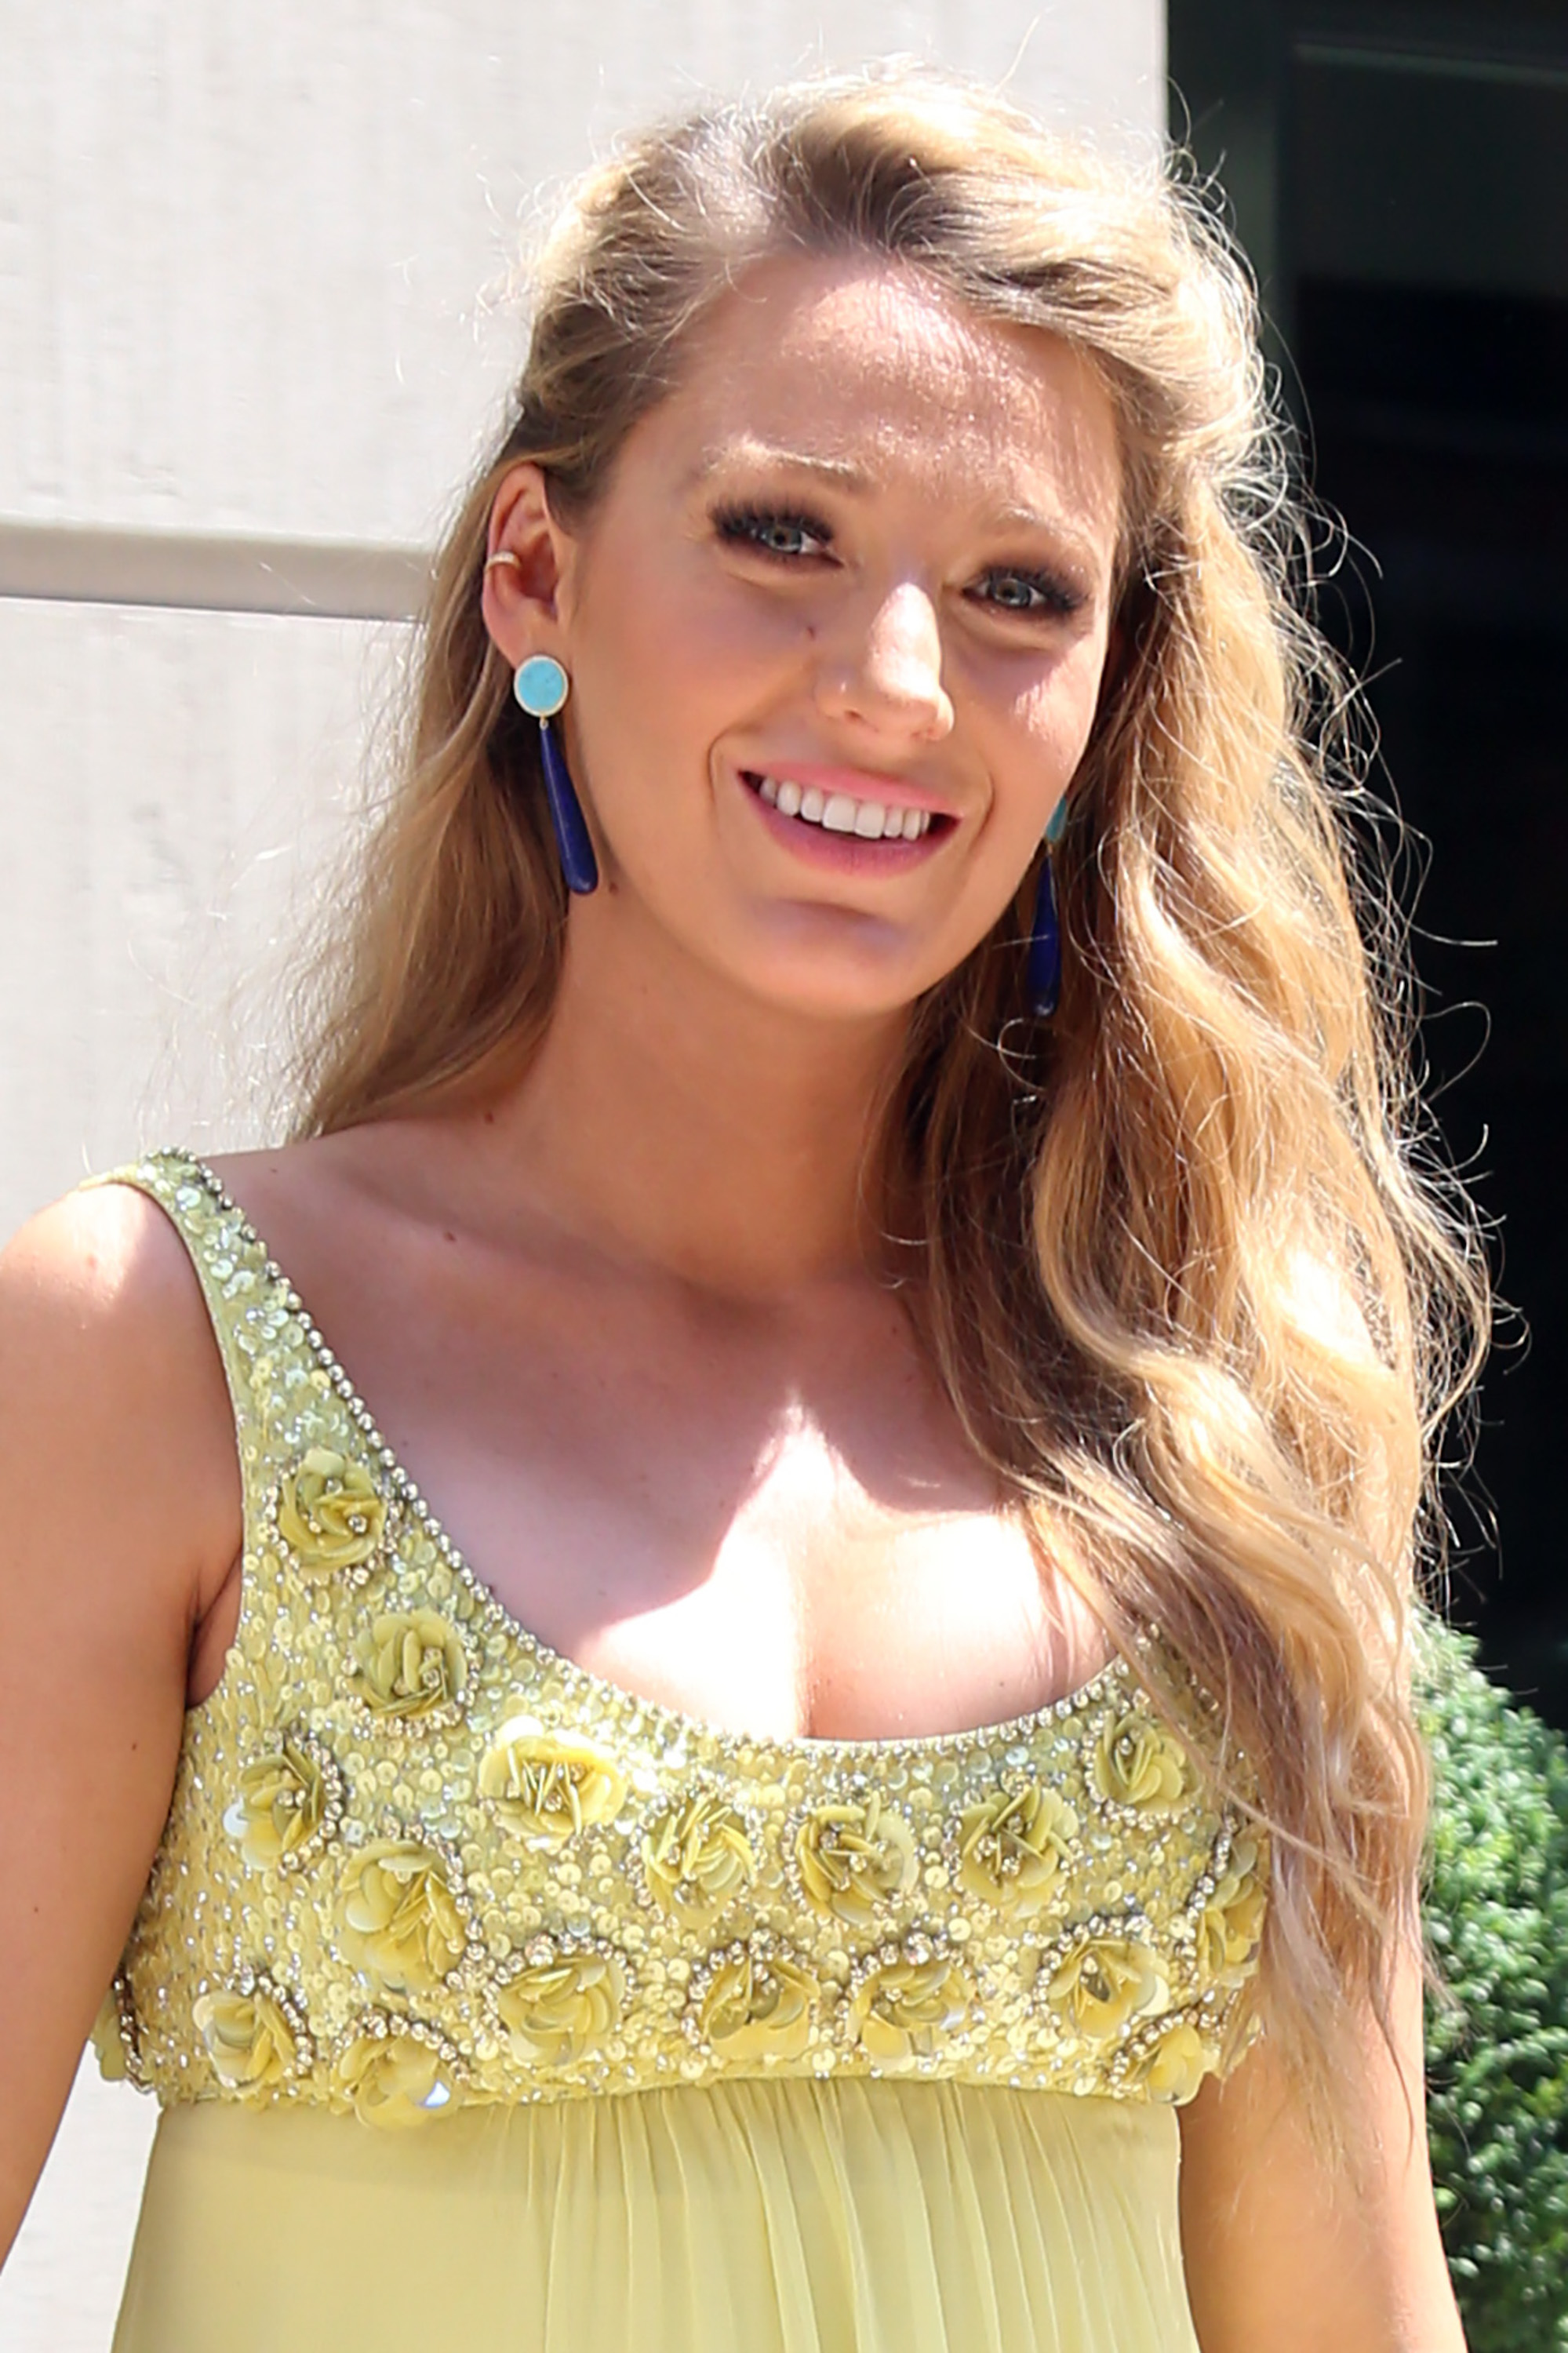 52098354 Pregnant actress Blake Lively out and about in New York City, New York on June 20, 2016. She wore a bright yellow maternity dress that showed off her pregnant belly. FameFlynet, Inc - Beverly Hills, CA, USA - +1 (310) 505-9876